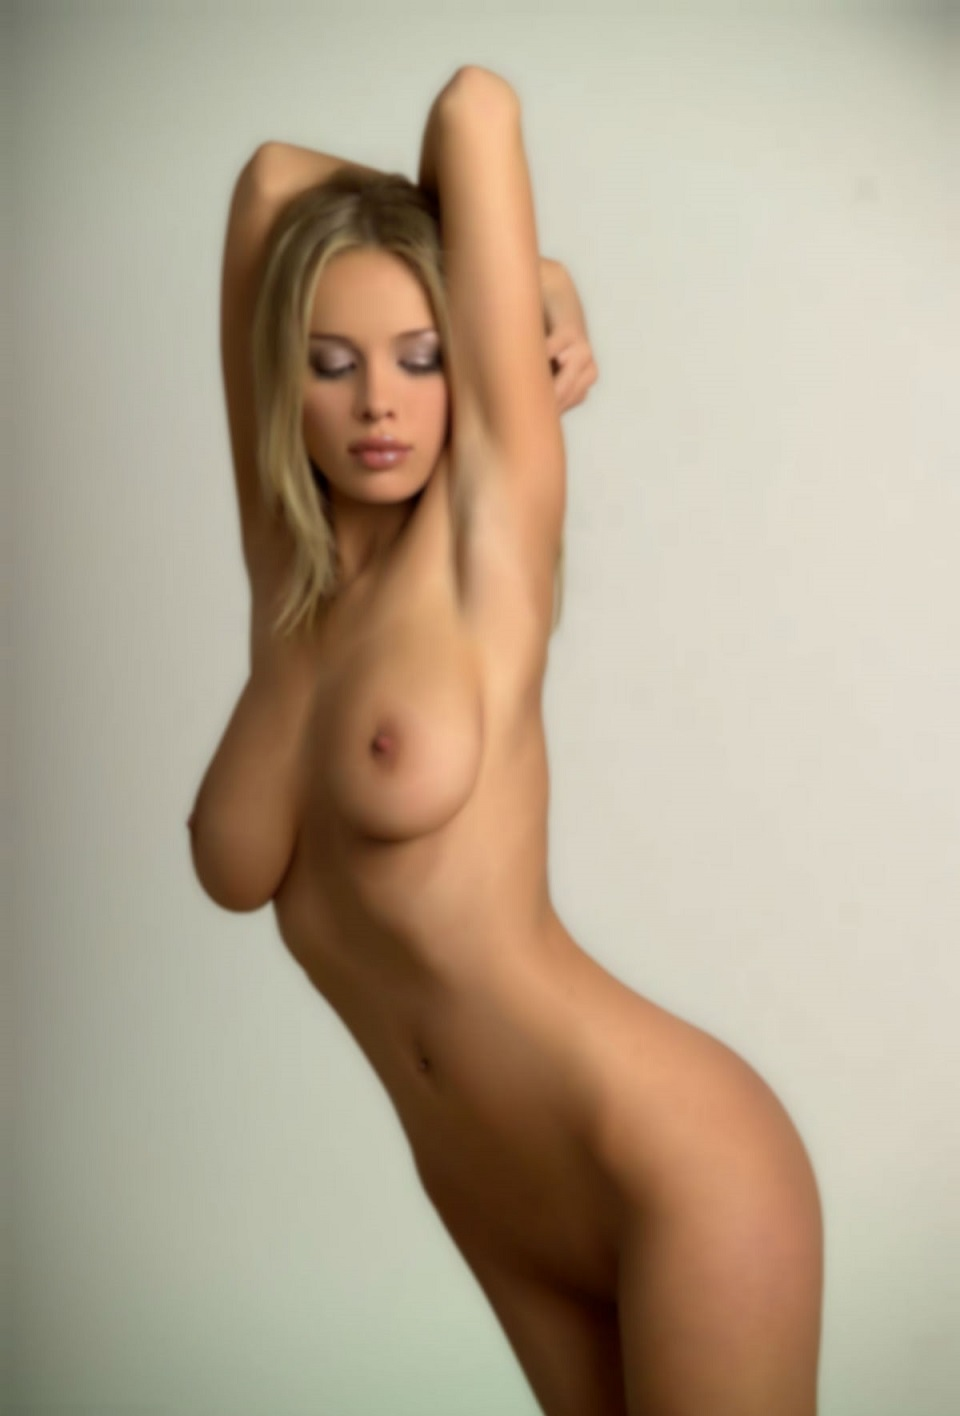 amature paris france escorts